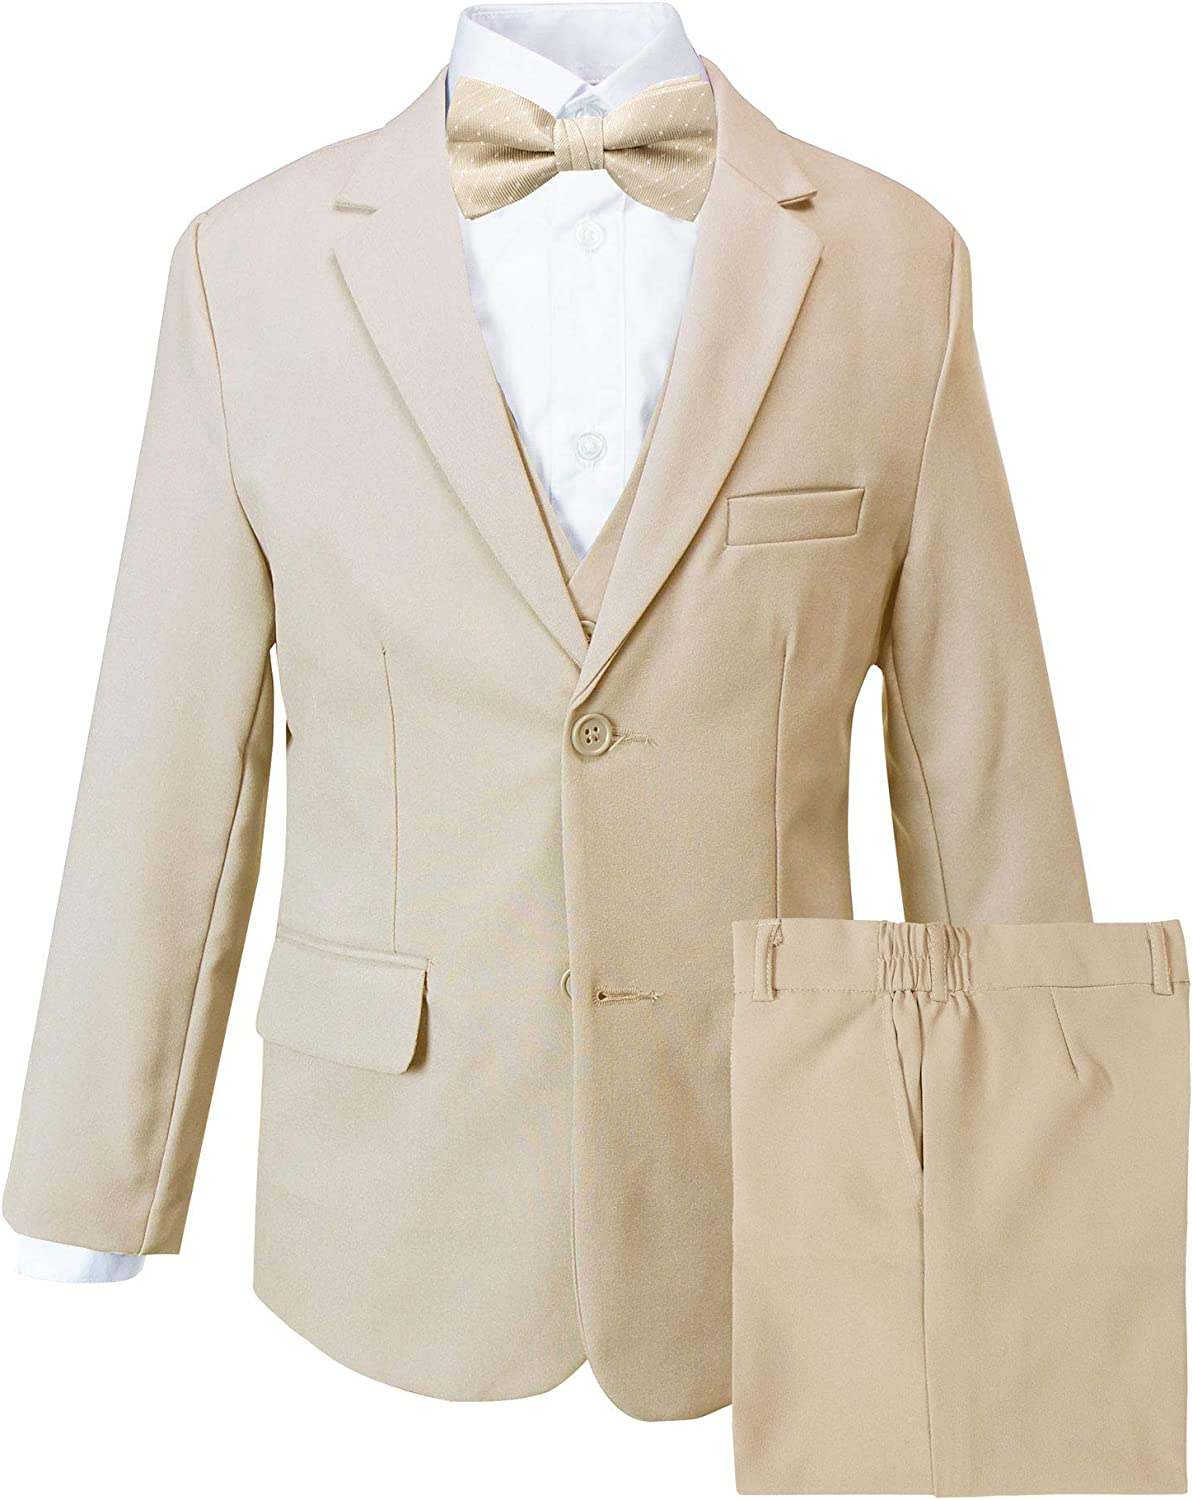 Spring Notion Boys' Modern Fit Khaki Dress Suit Set with Bow Tie